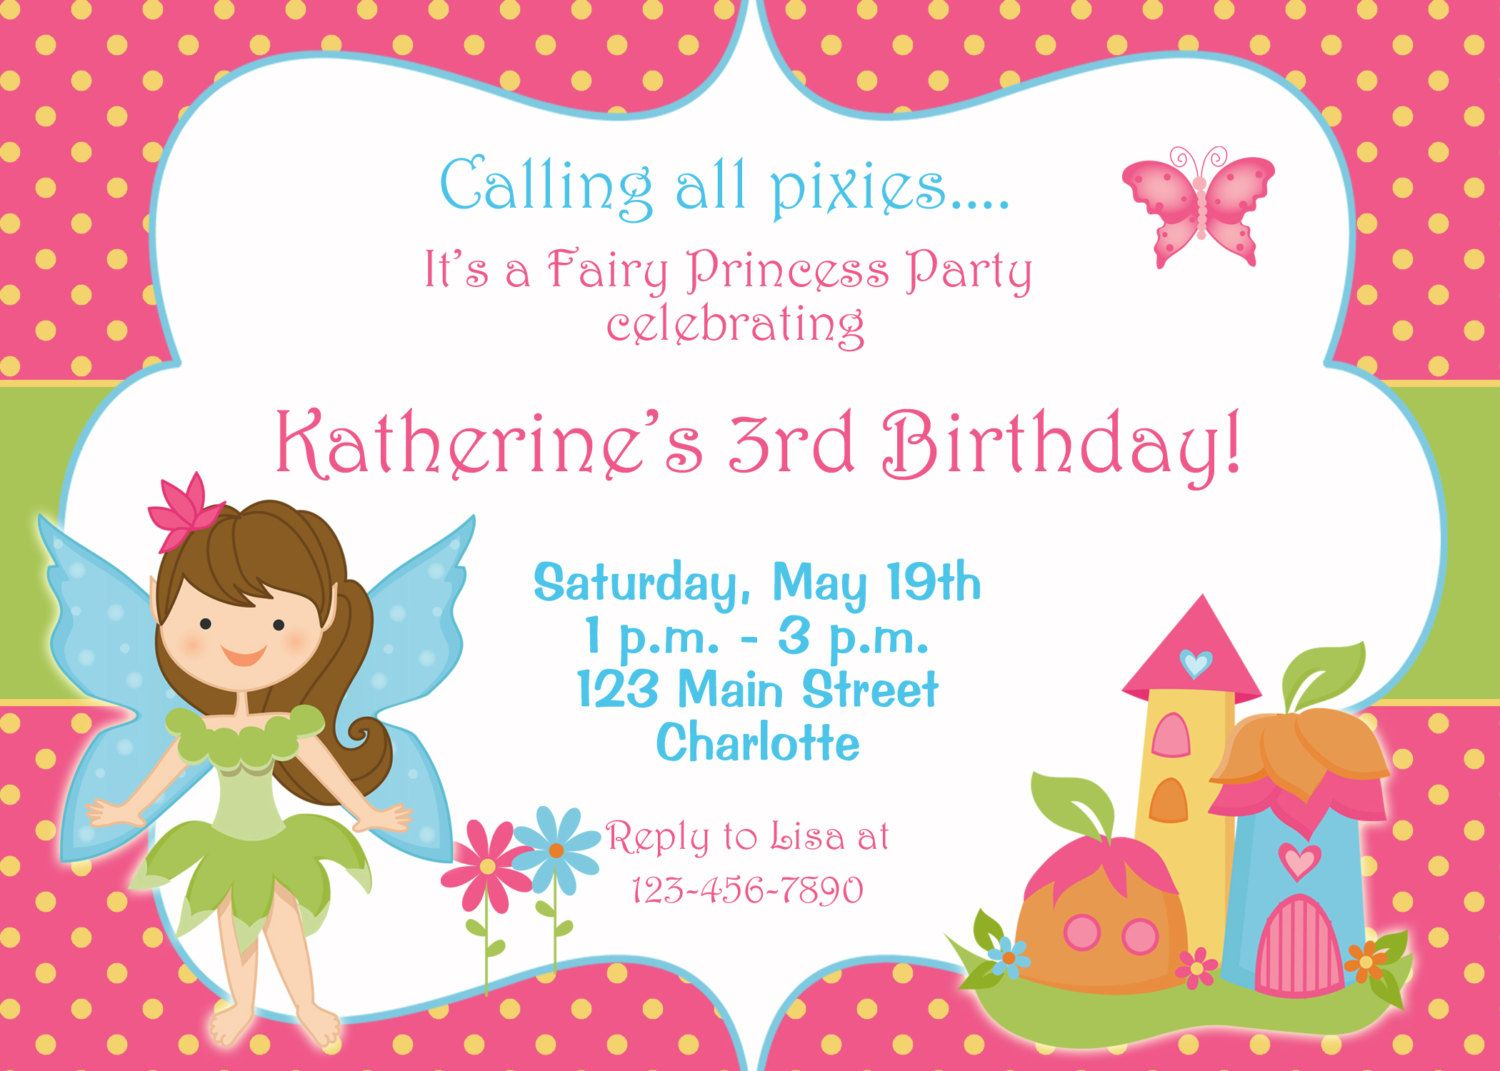 17 best ideas about birthday invitation templates on fairy princess party birthday invitation by thebutterflypress